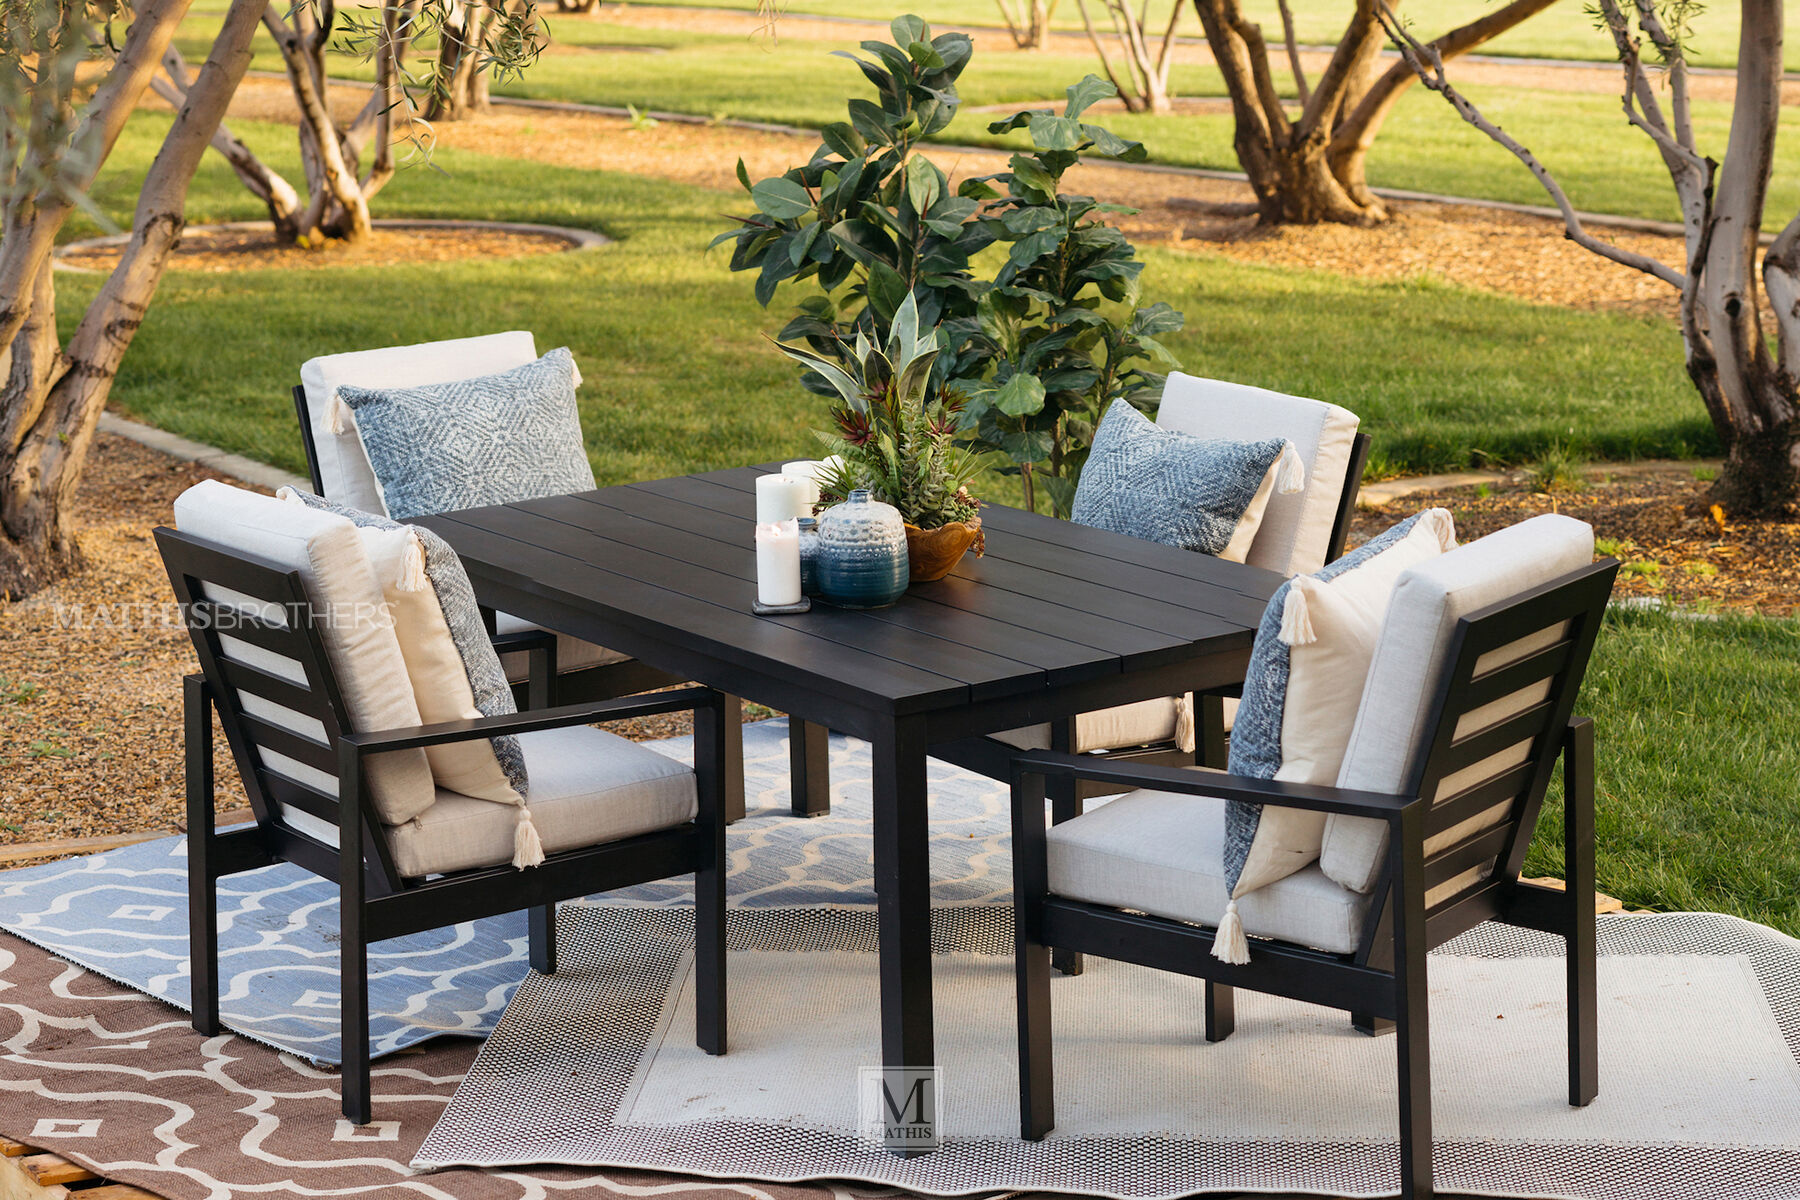 Black Patio Chairs Modern Aluminum Patio Dining Chair In Black Mathis